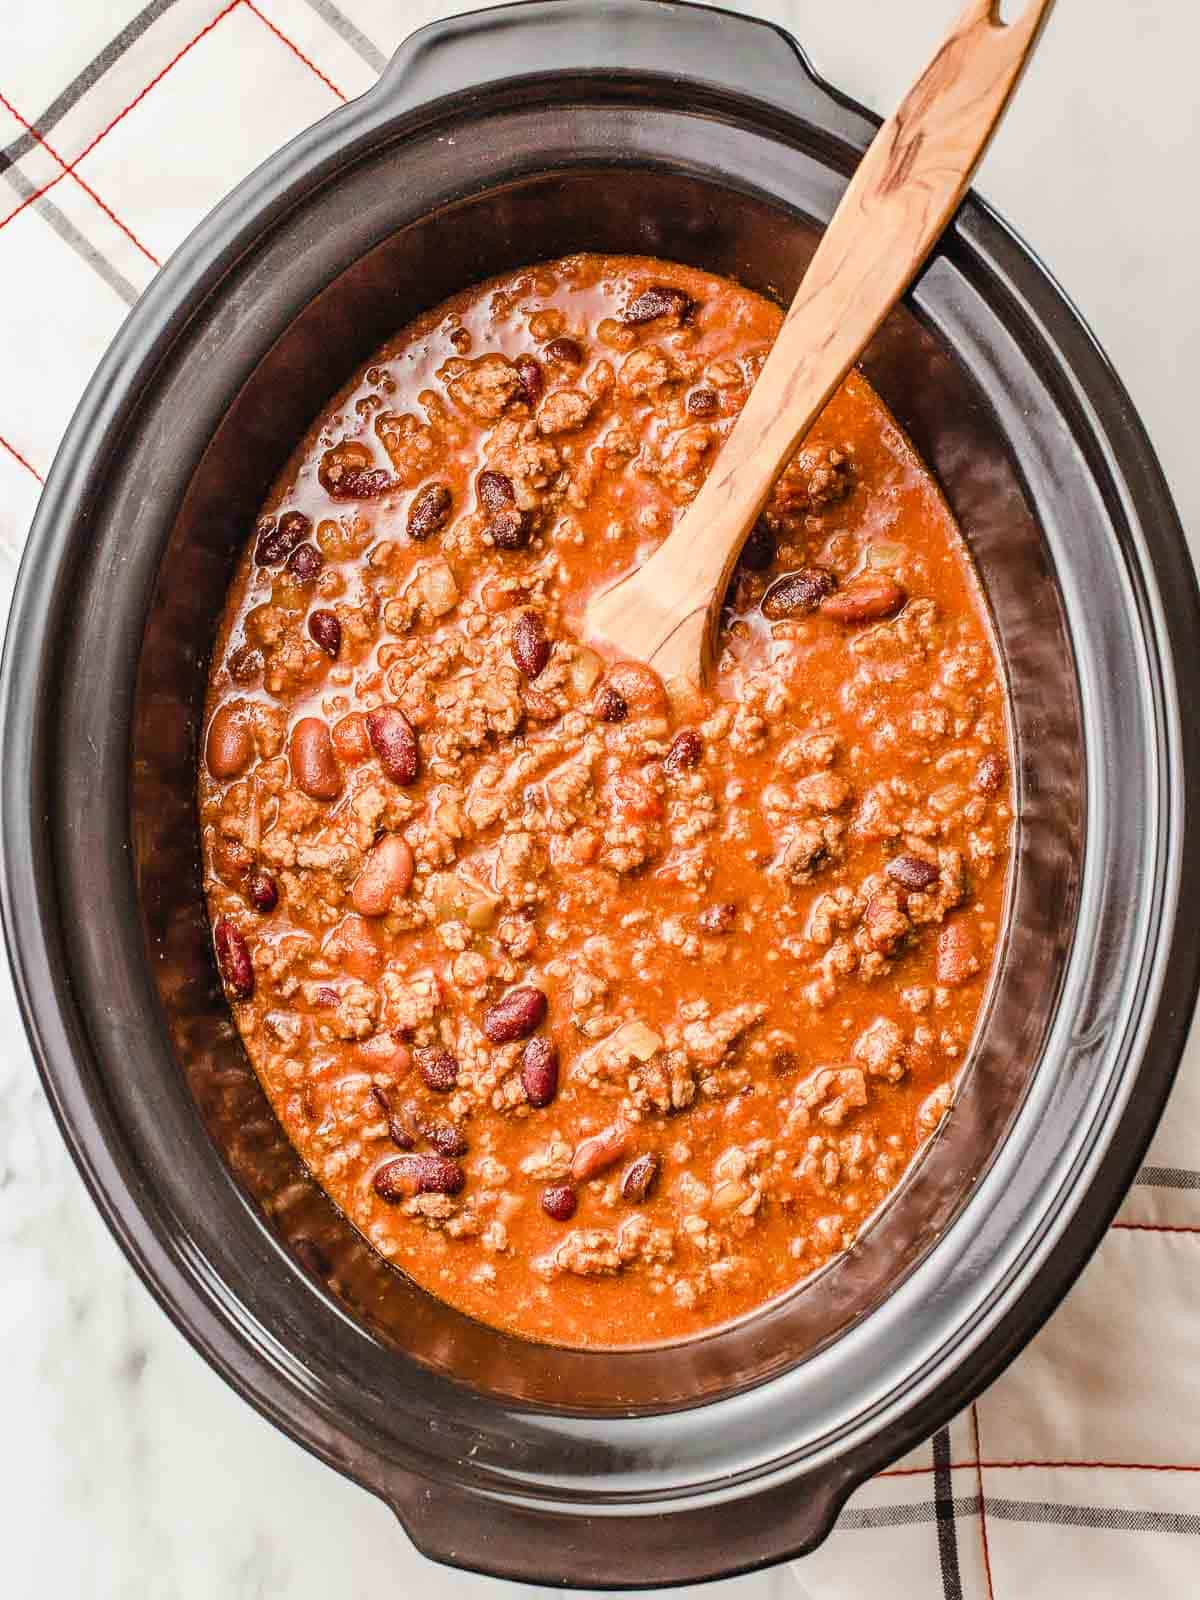 Slow cooker chili after it's finished cooking.